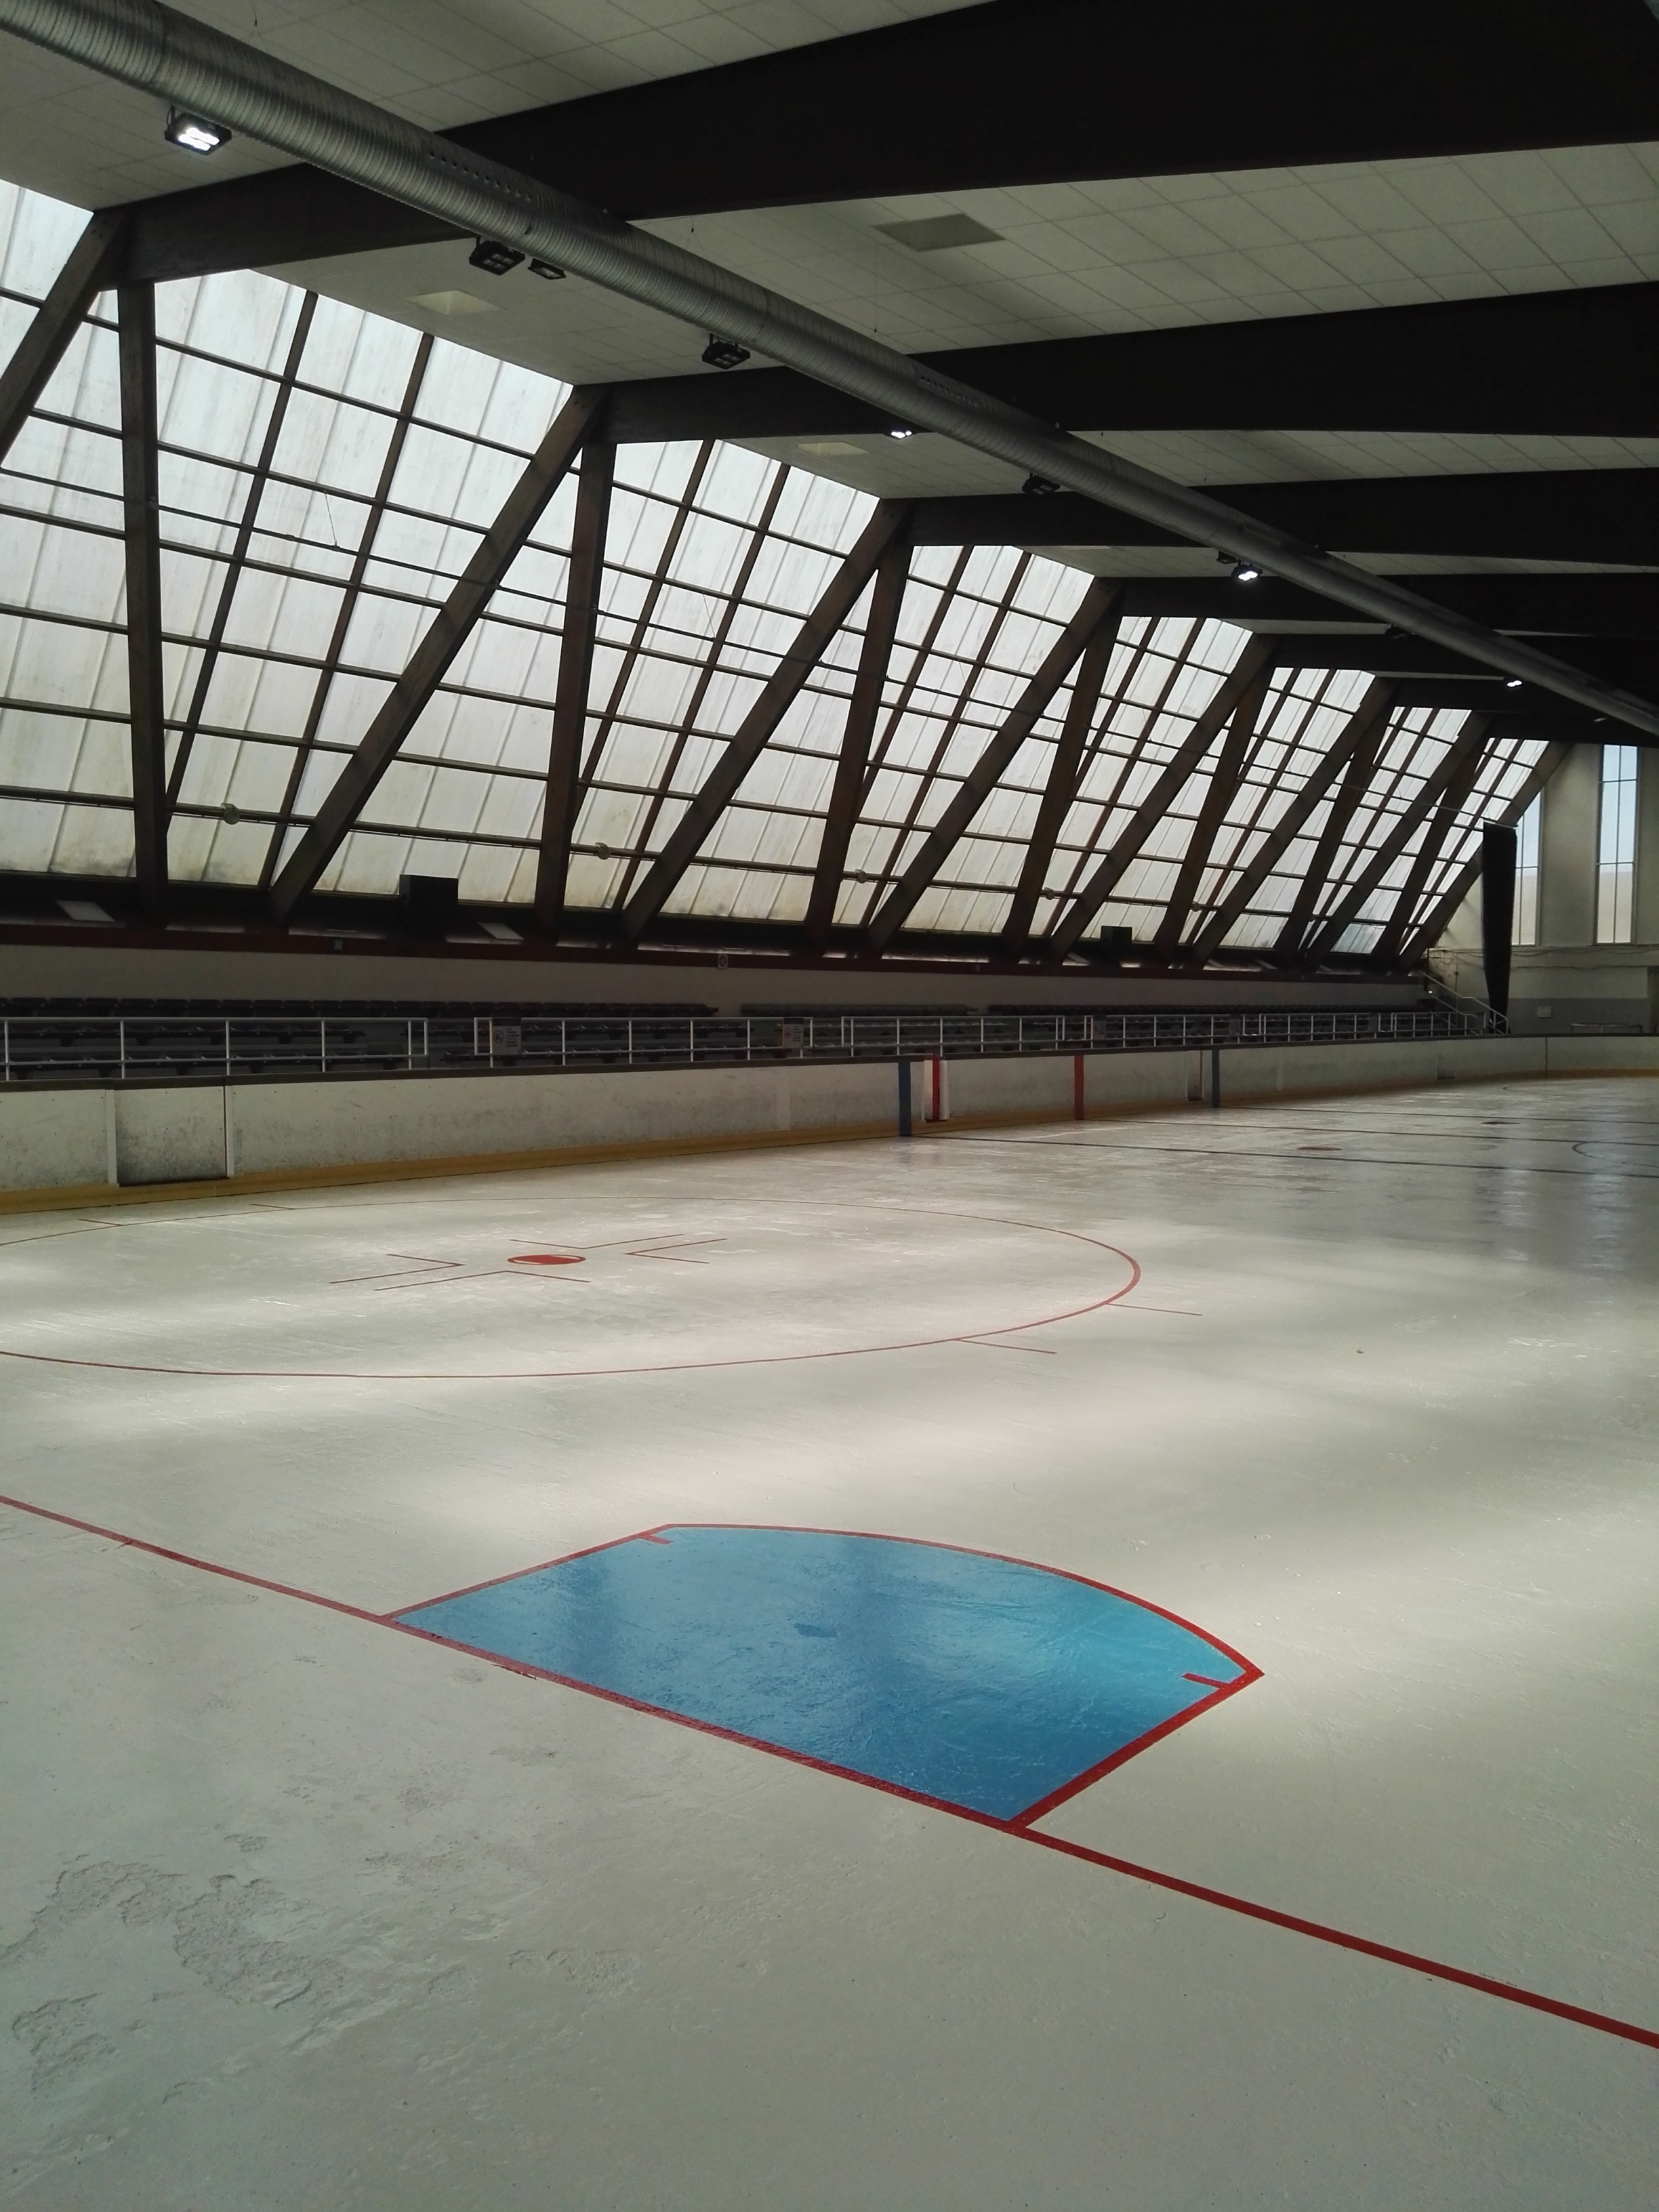 Terrain de Hockey nouvelle Norme - Paris - Trace Plus